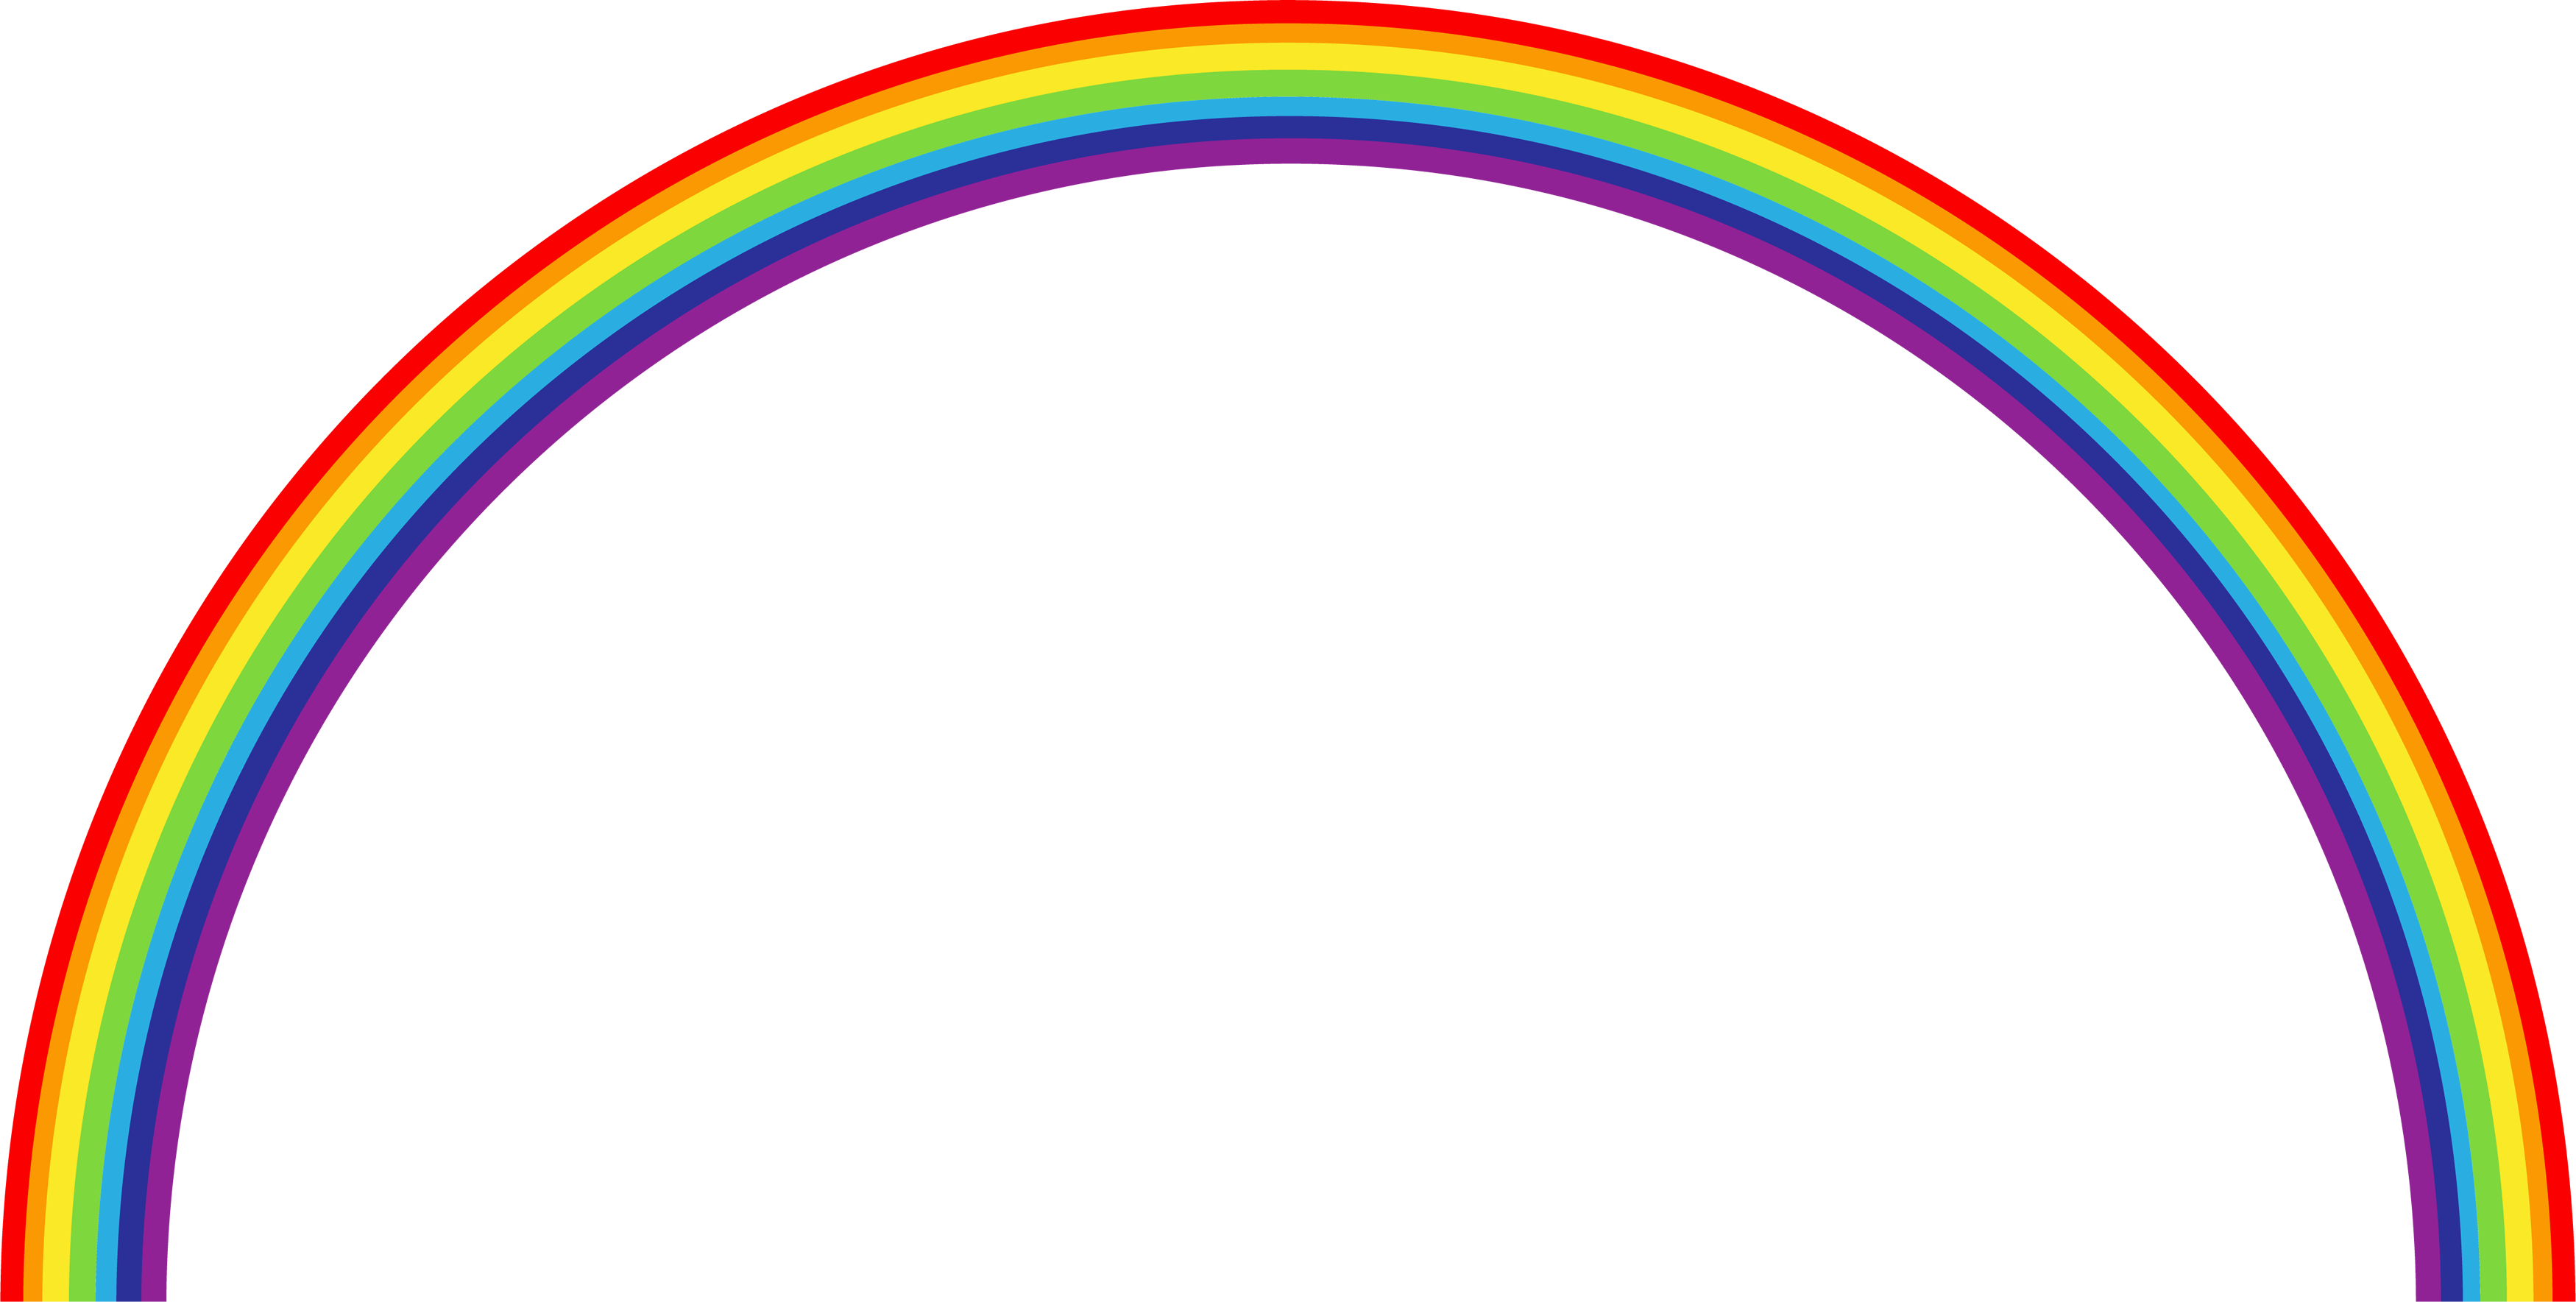 Simple Rainbow Png image #7005